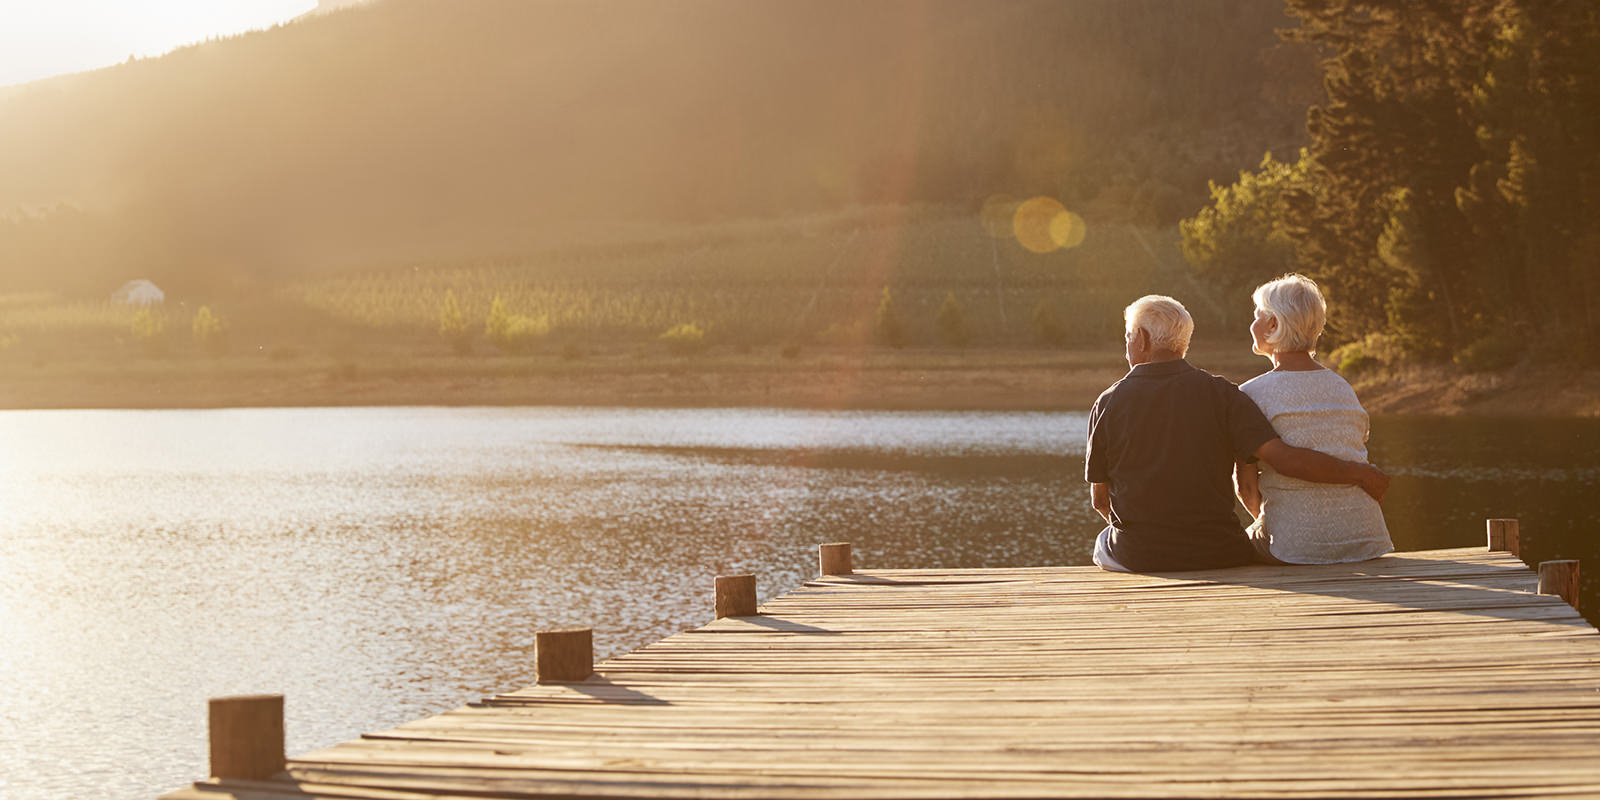 An older retired couple sits at the end of a pier on lake enjoying the scenery